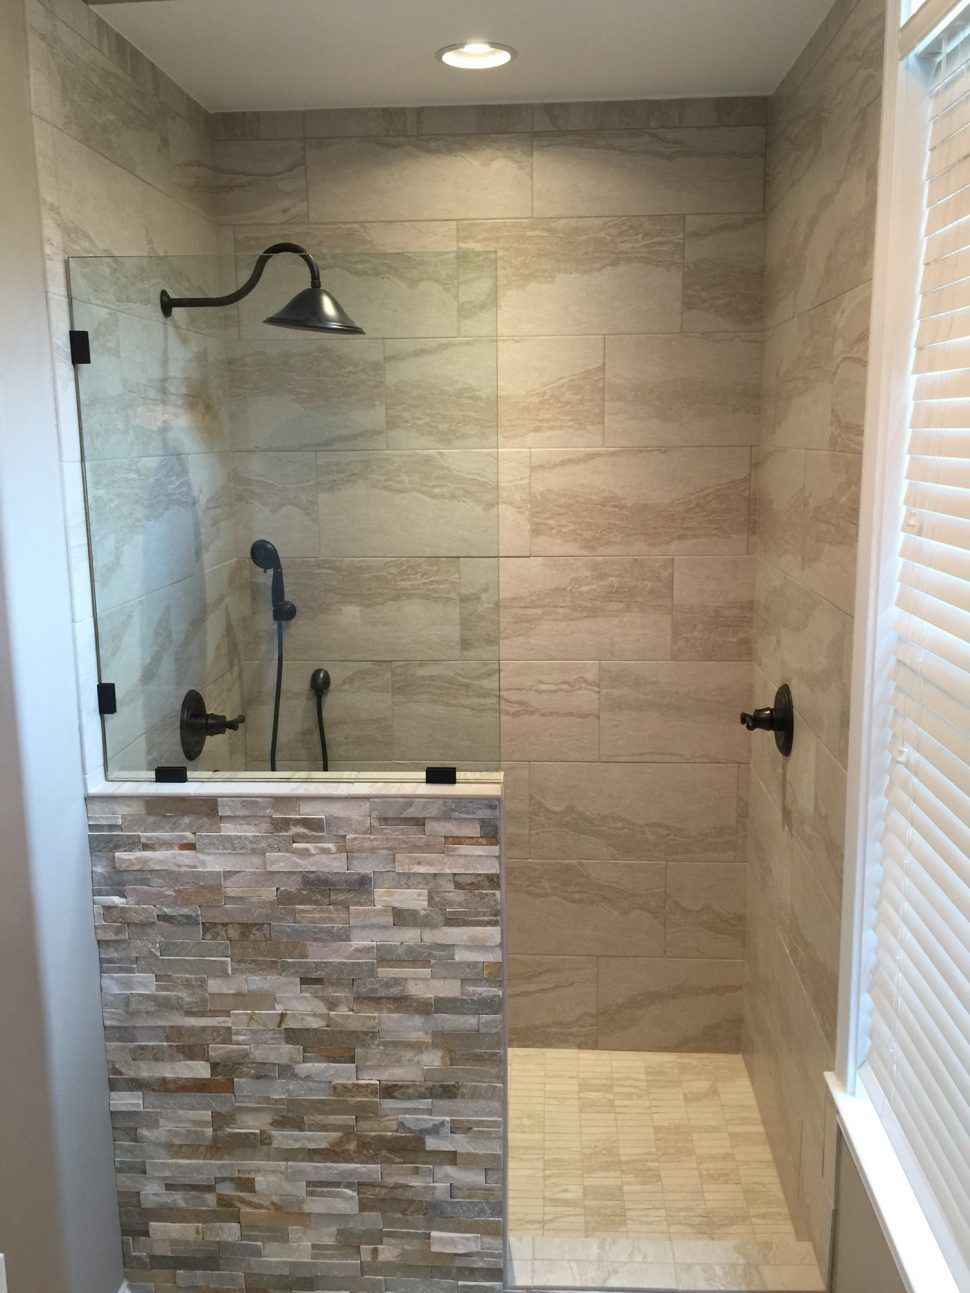 Pin By Suz Tabares On For The Home In 2019 Small Bathroom With